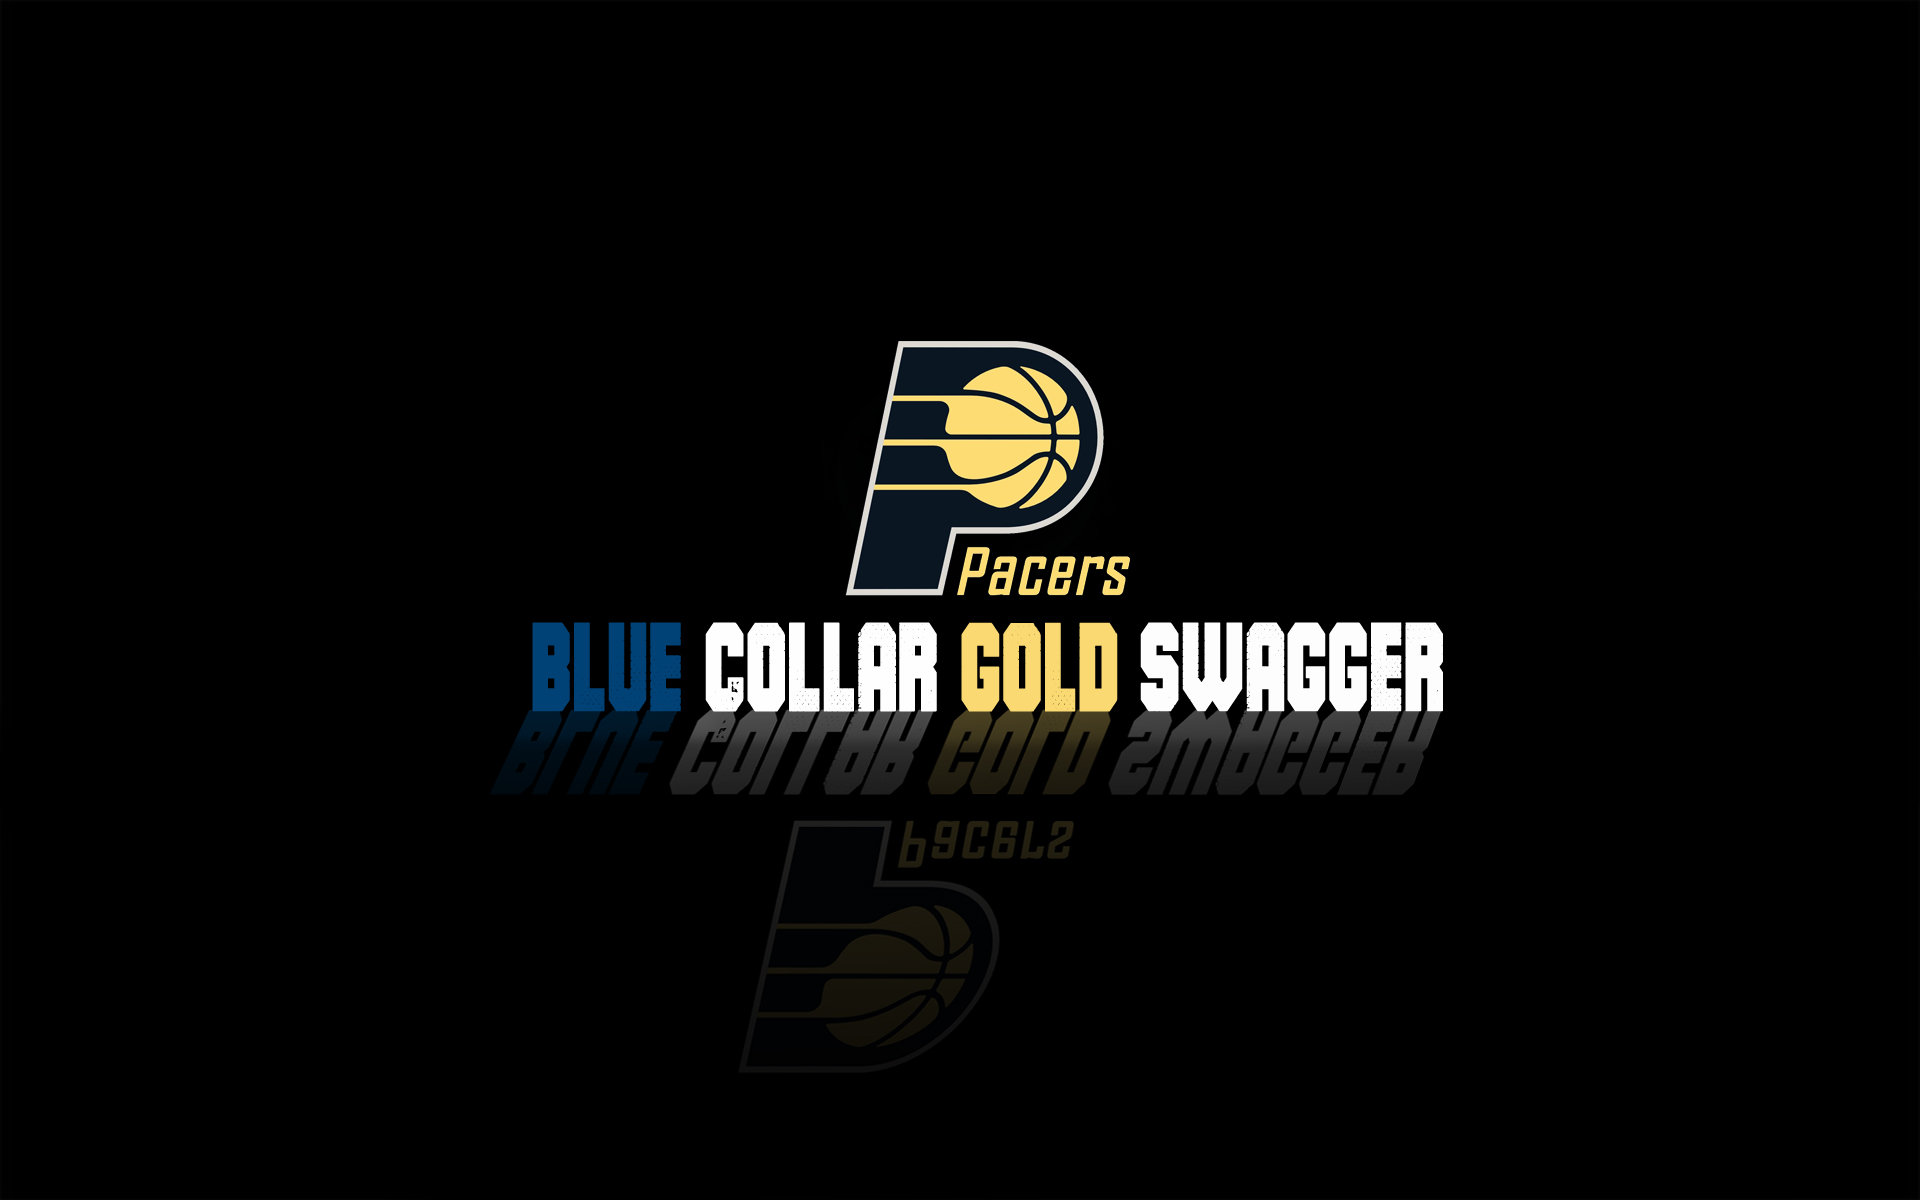 INDIANA PACERS nba basketball 40 wallpaper background 1920x1200